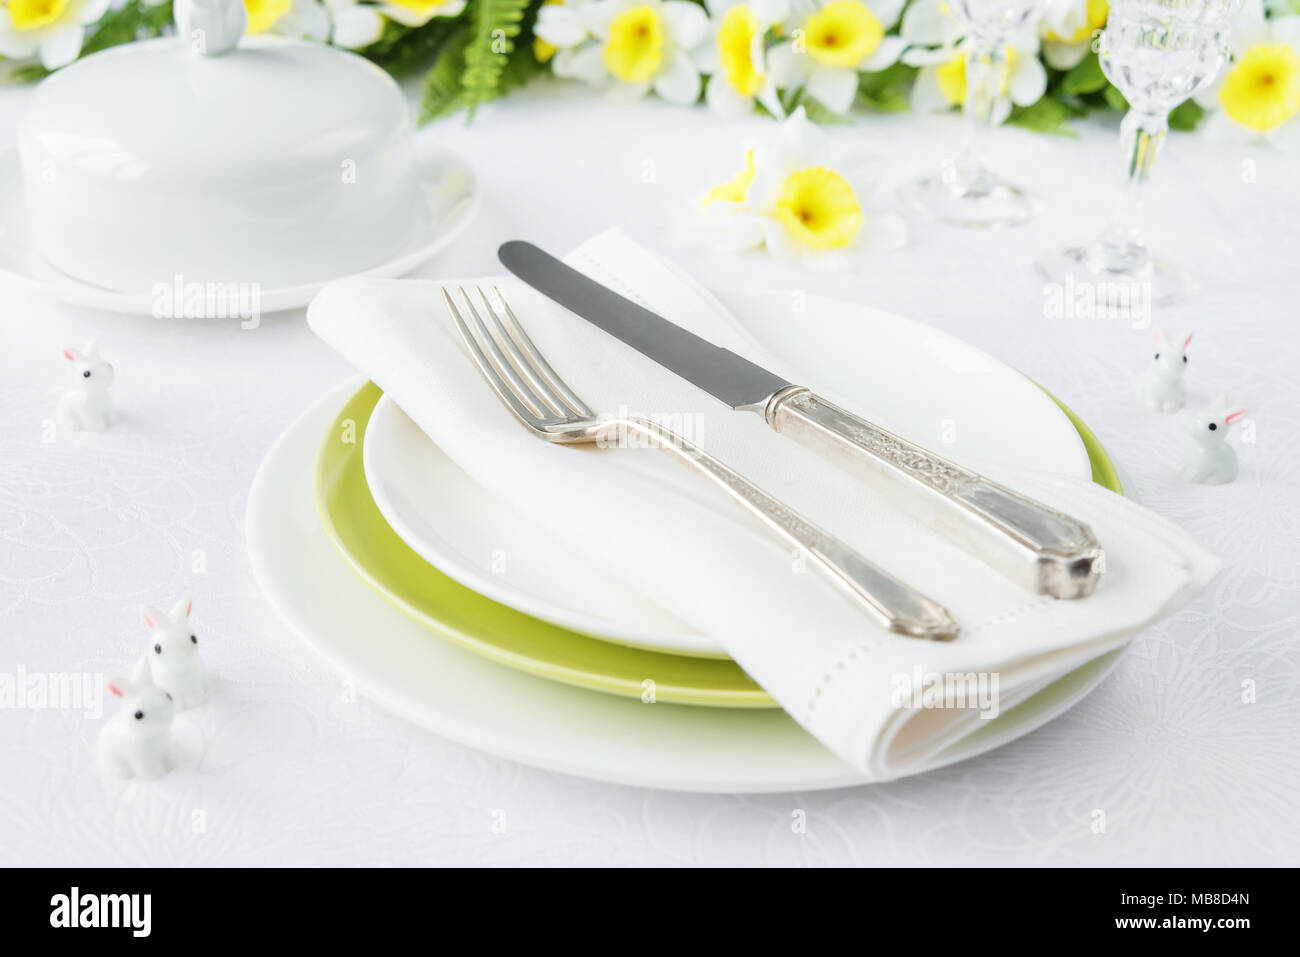 Classic serving for a gala dinner with white and green porcelain plates, silverware and spring flowers on a white tablecloth Stock Photo